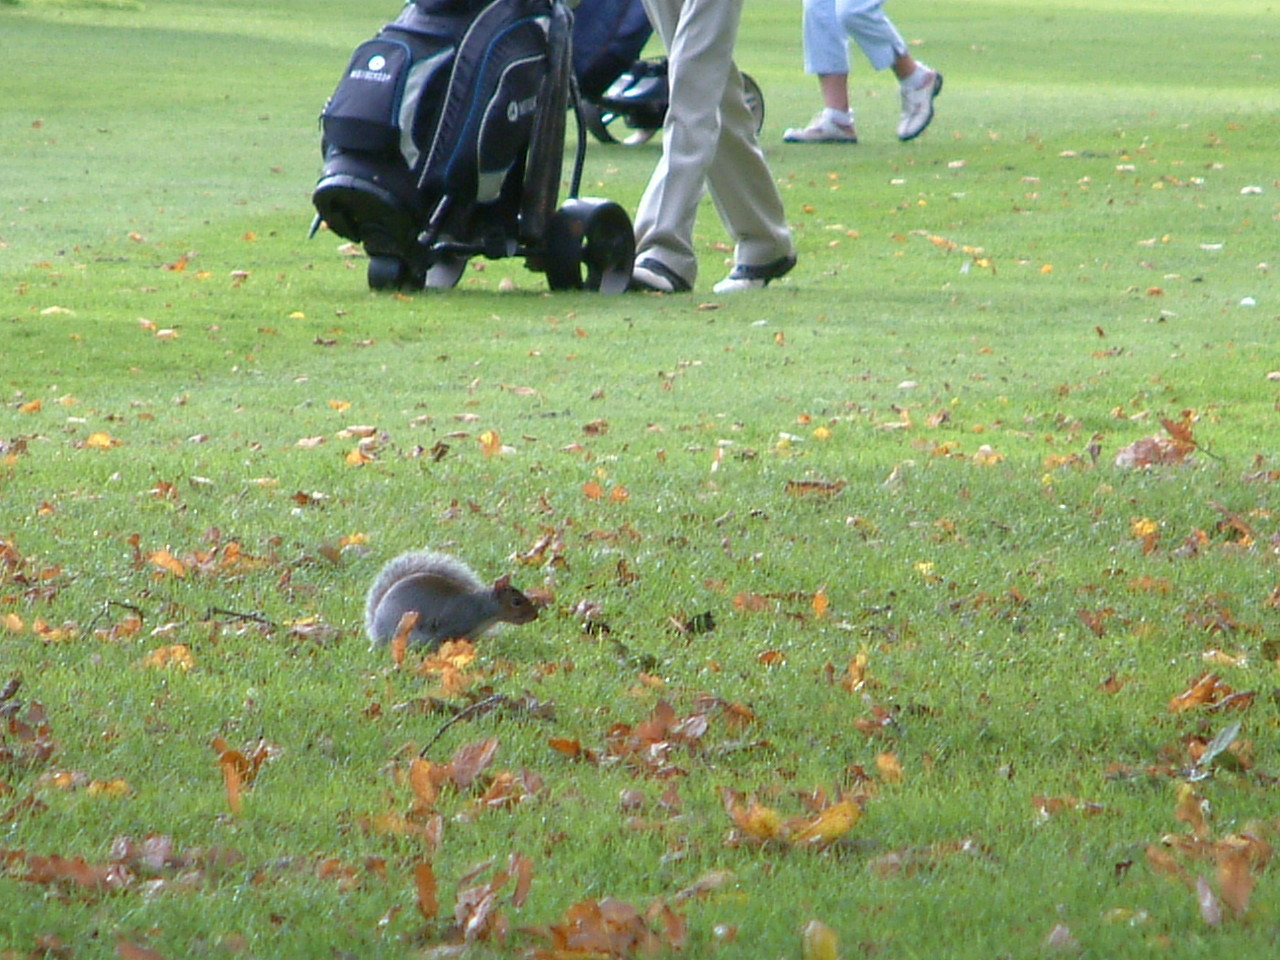 Charity Golf Day Proves A Great Success At Wellingborough Golf Club